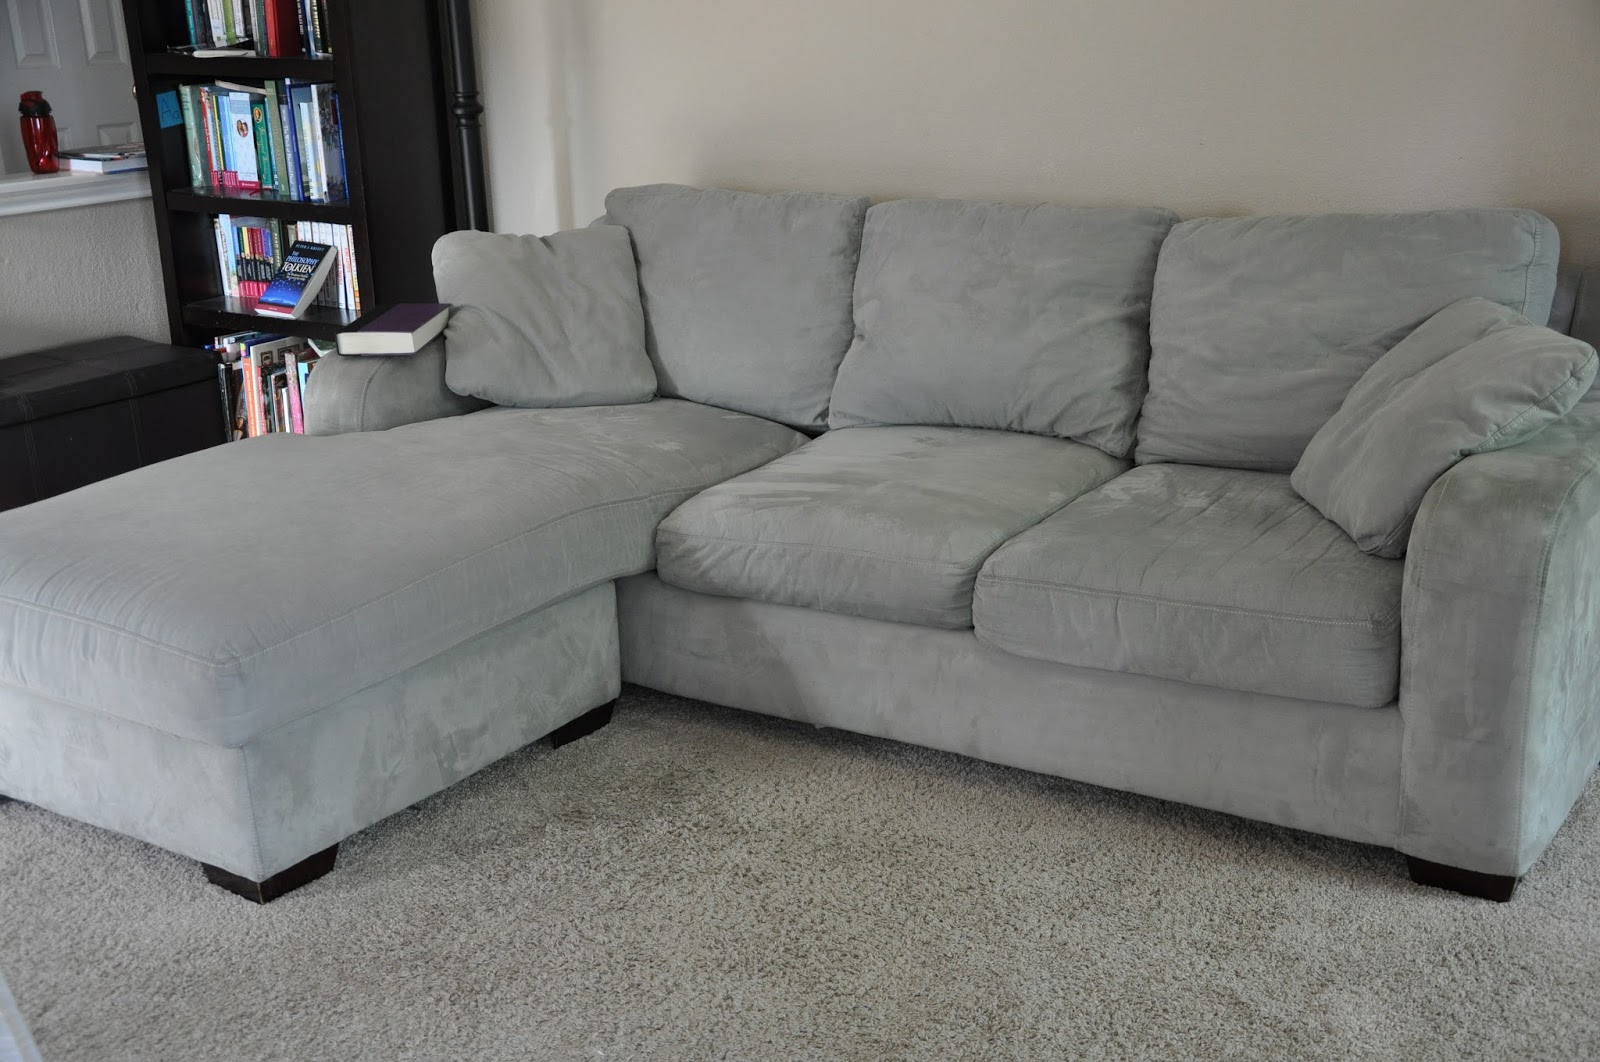 Overstuffed sofa - I Cleaned My Couch